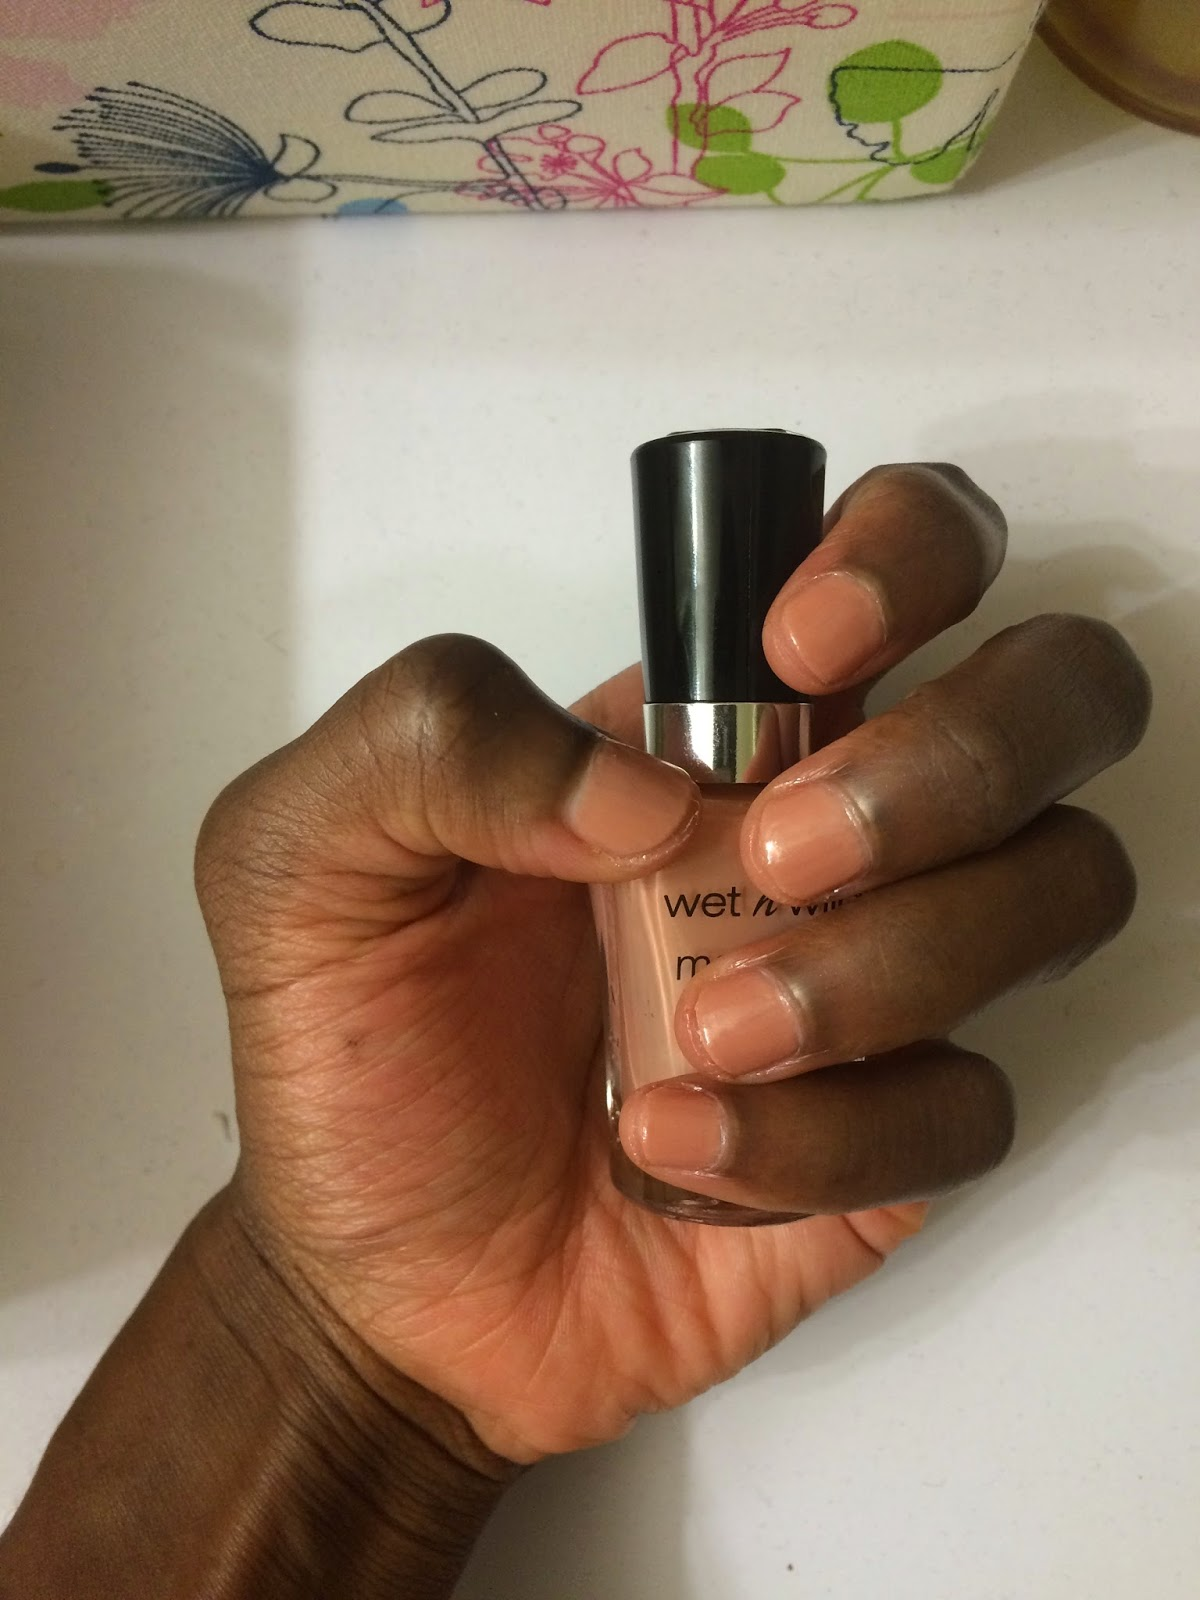 Wet N Wild Private Viewing on dark skin